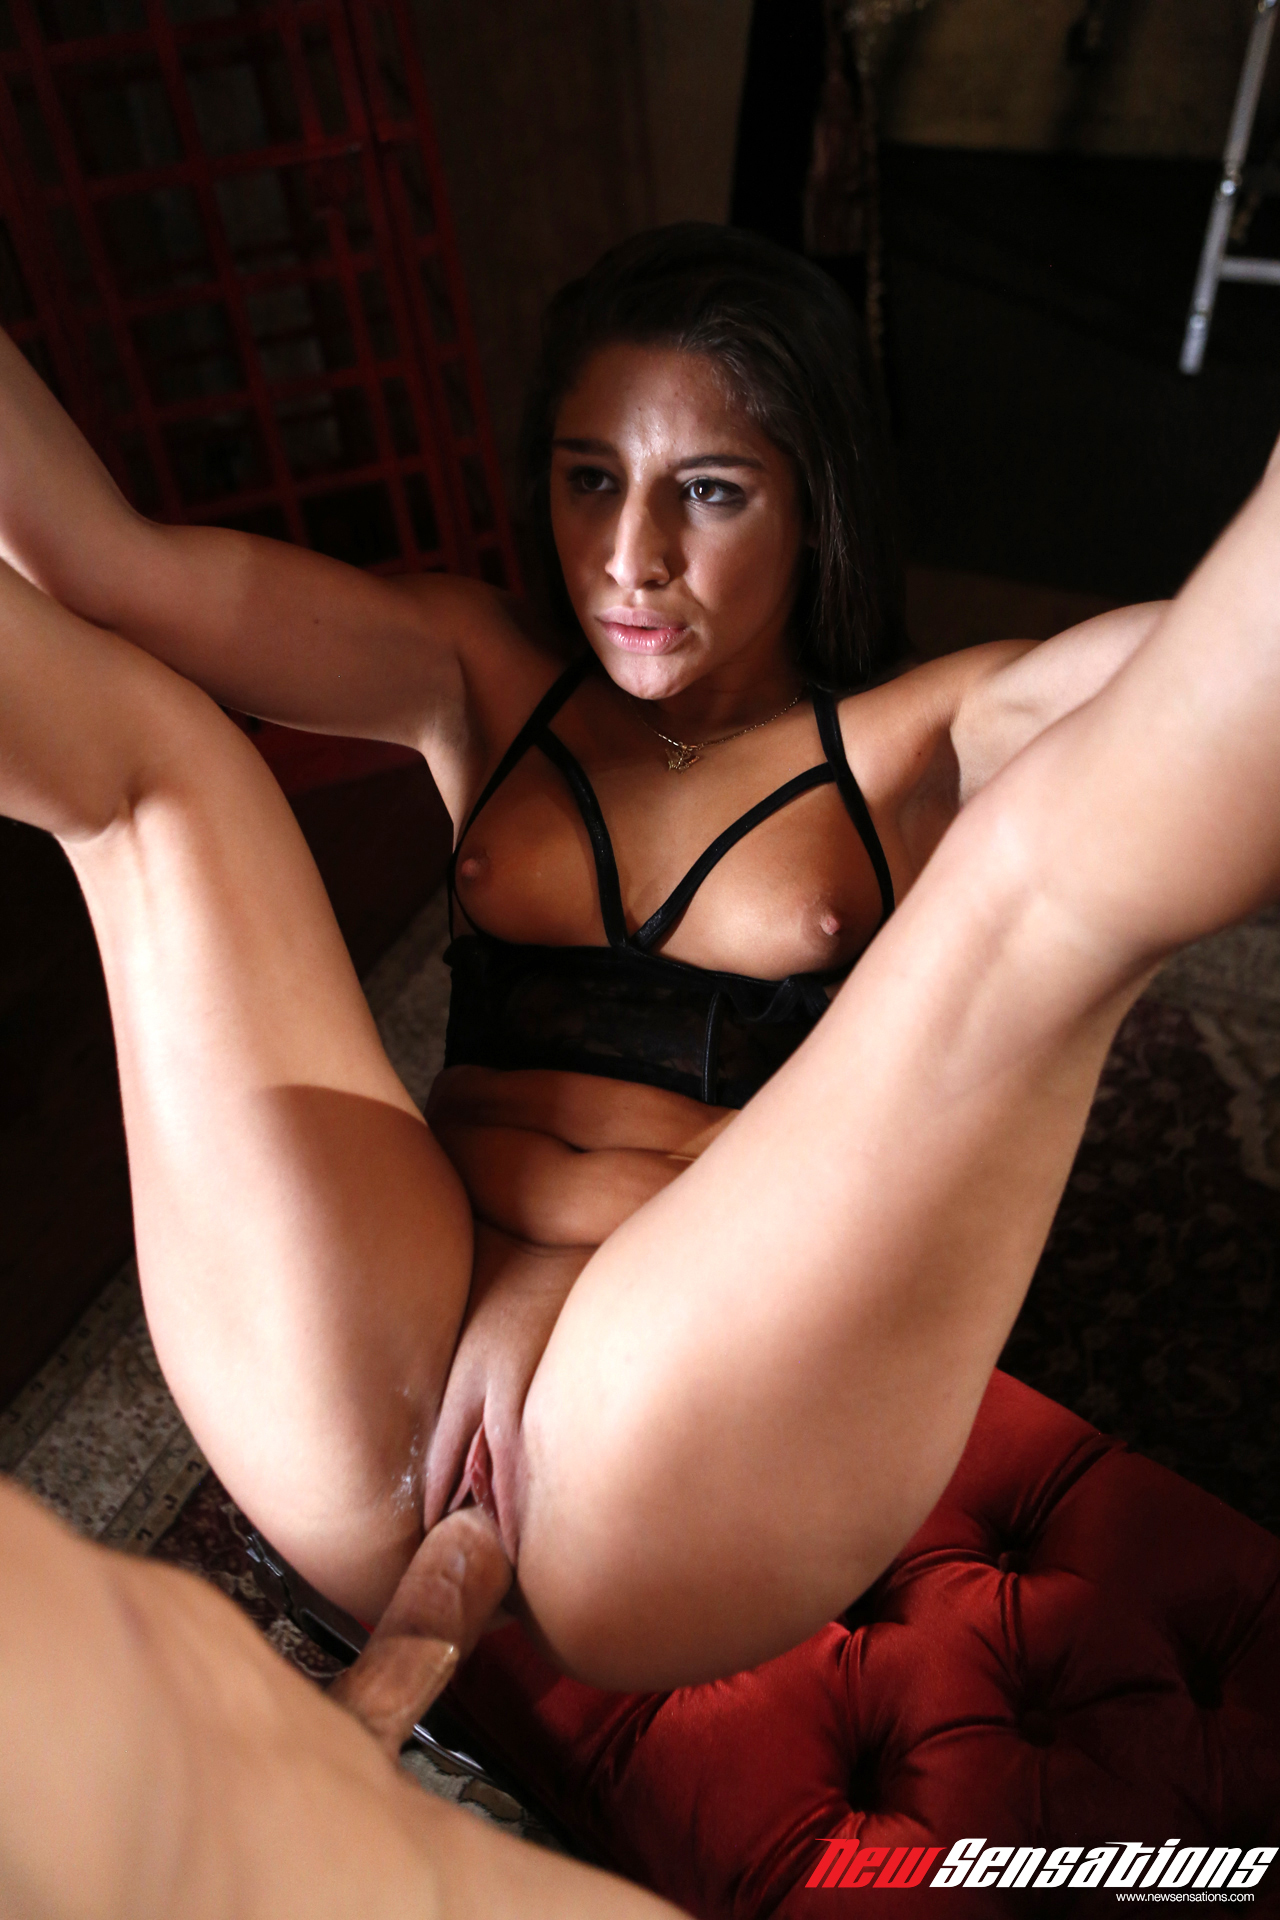 hot naked latina getting fucked